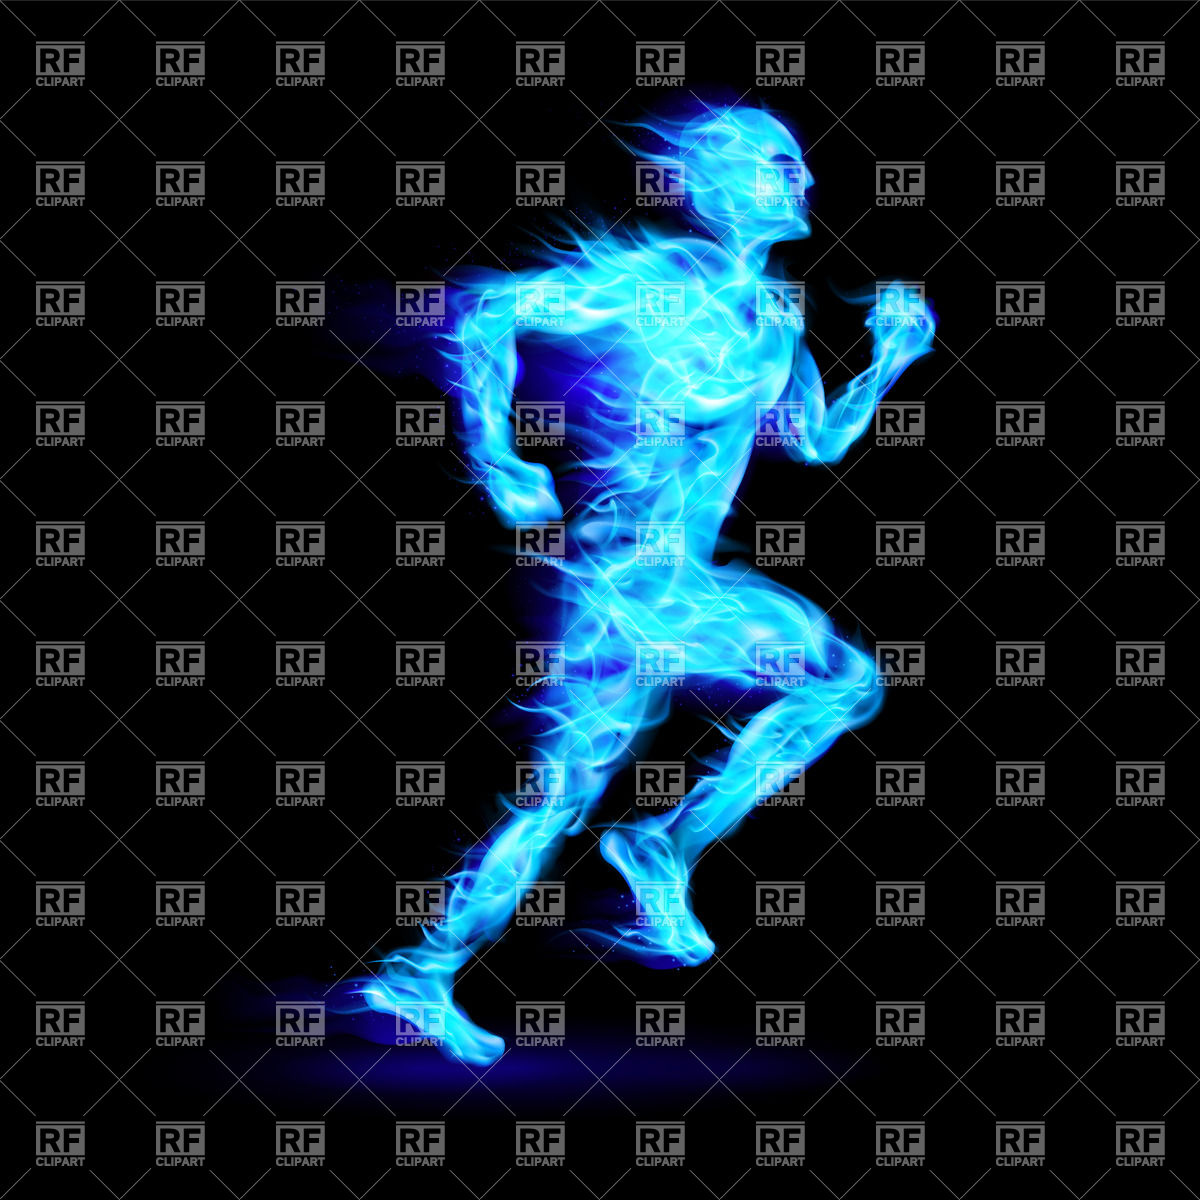 Blue fiery running man with motion effect Vector Image #34928.